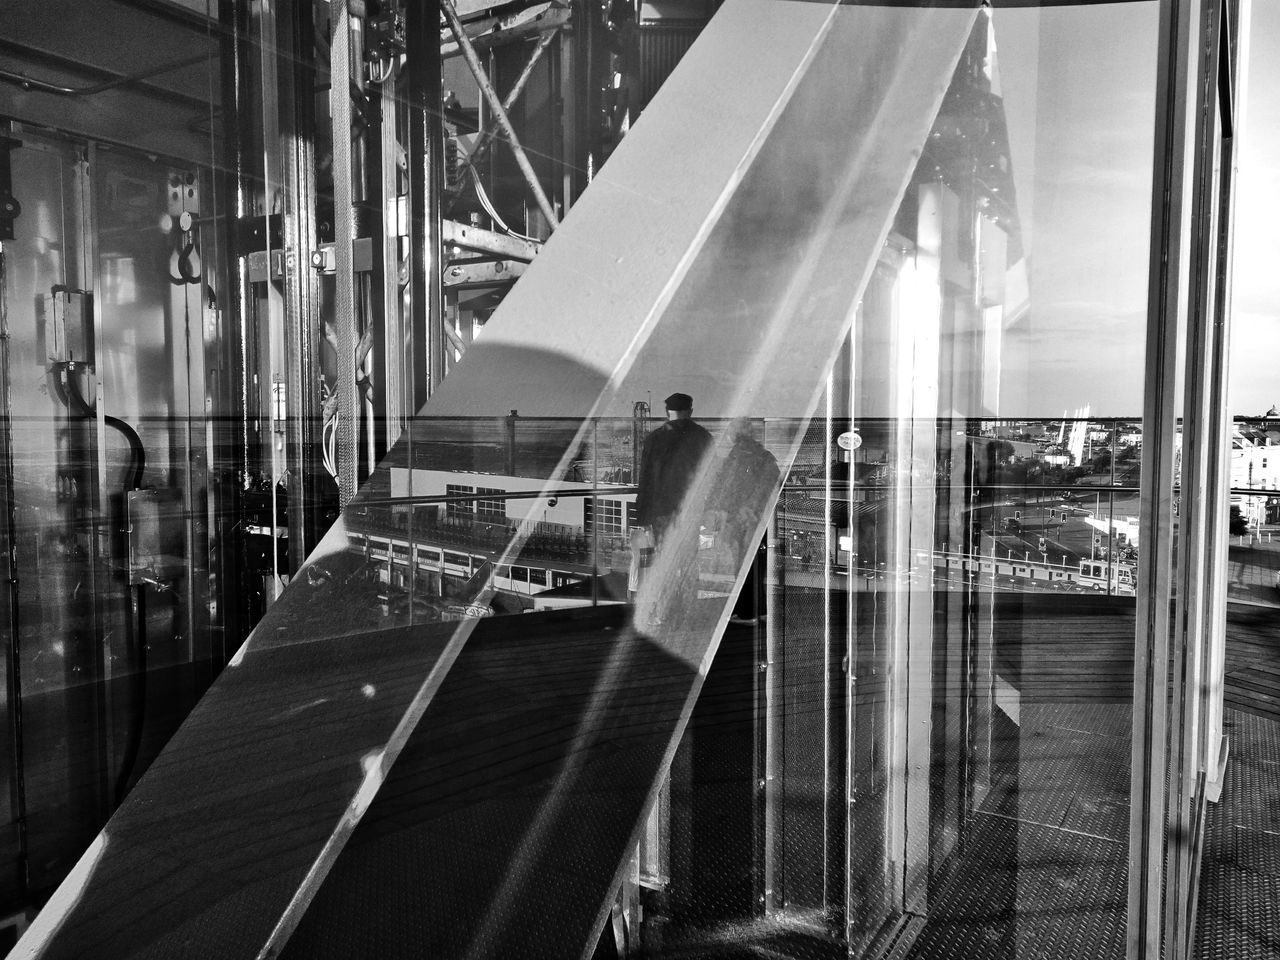 Waiting in reflection. Reflections Southend On Sea Lift Elevator Shaft Elevator Southend Lift Shaft Southend Pier Hill Southendonsea Machinery Abstract Pier Hill Lift Reflection Architecture Built Structure Blackandwhite Black And White